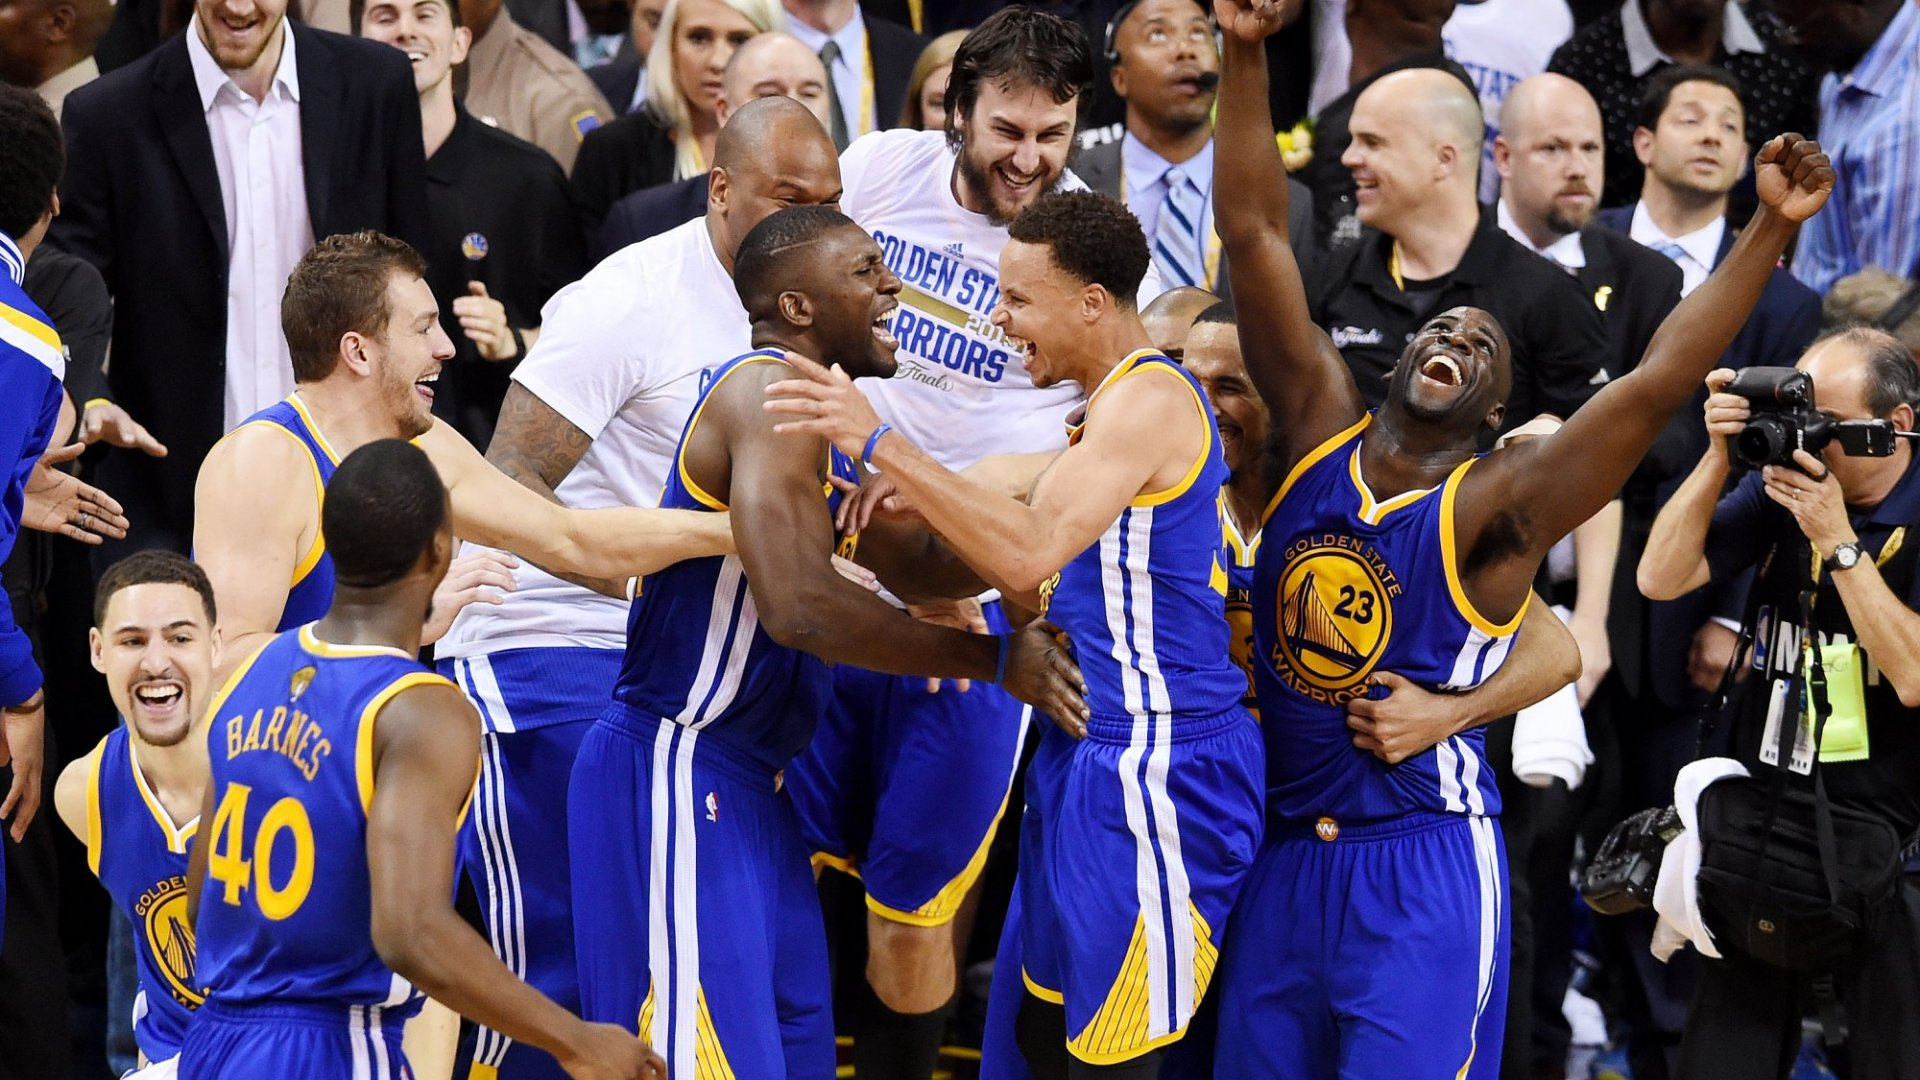 What Your Business Can Learn about Winning from the NBA's Golden State Warriors